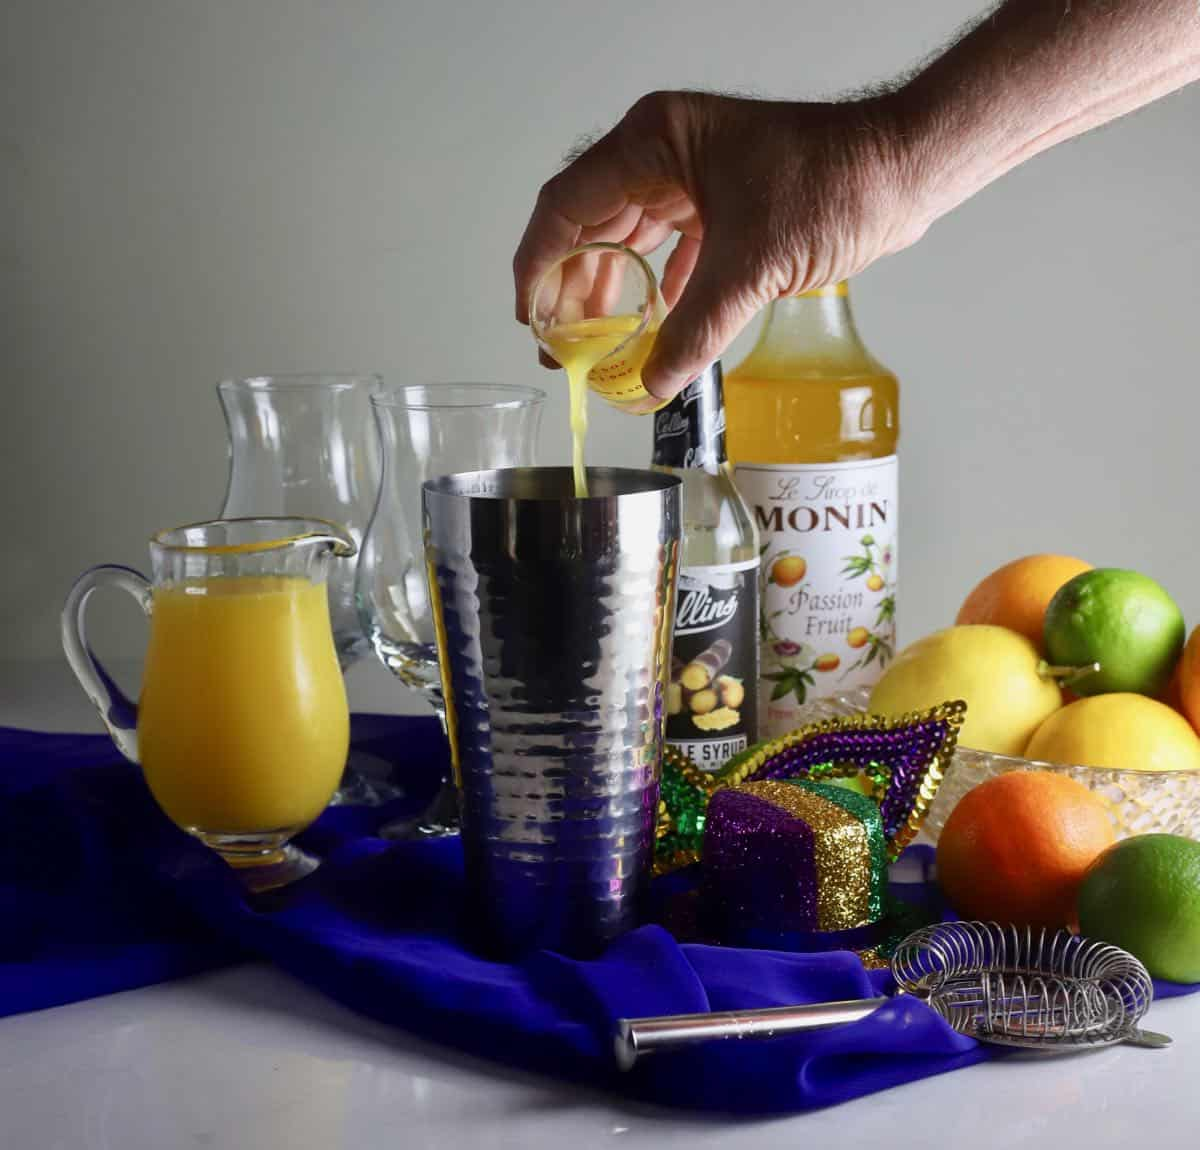 Adding a jigger of passion fruit juice to a metal cocktail shaker.